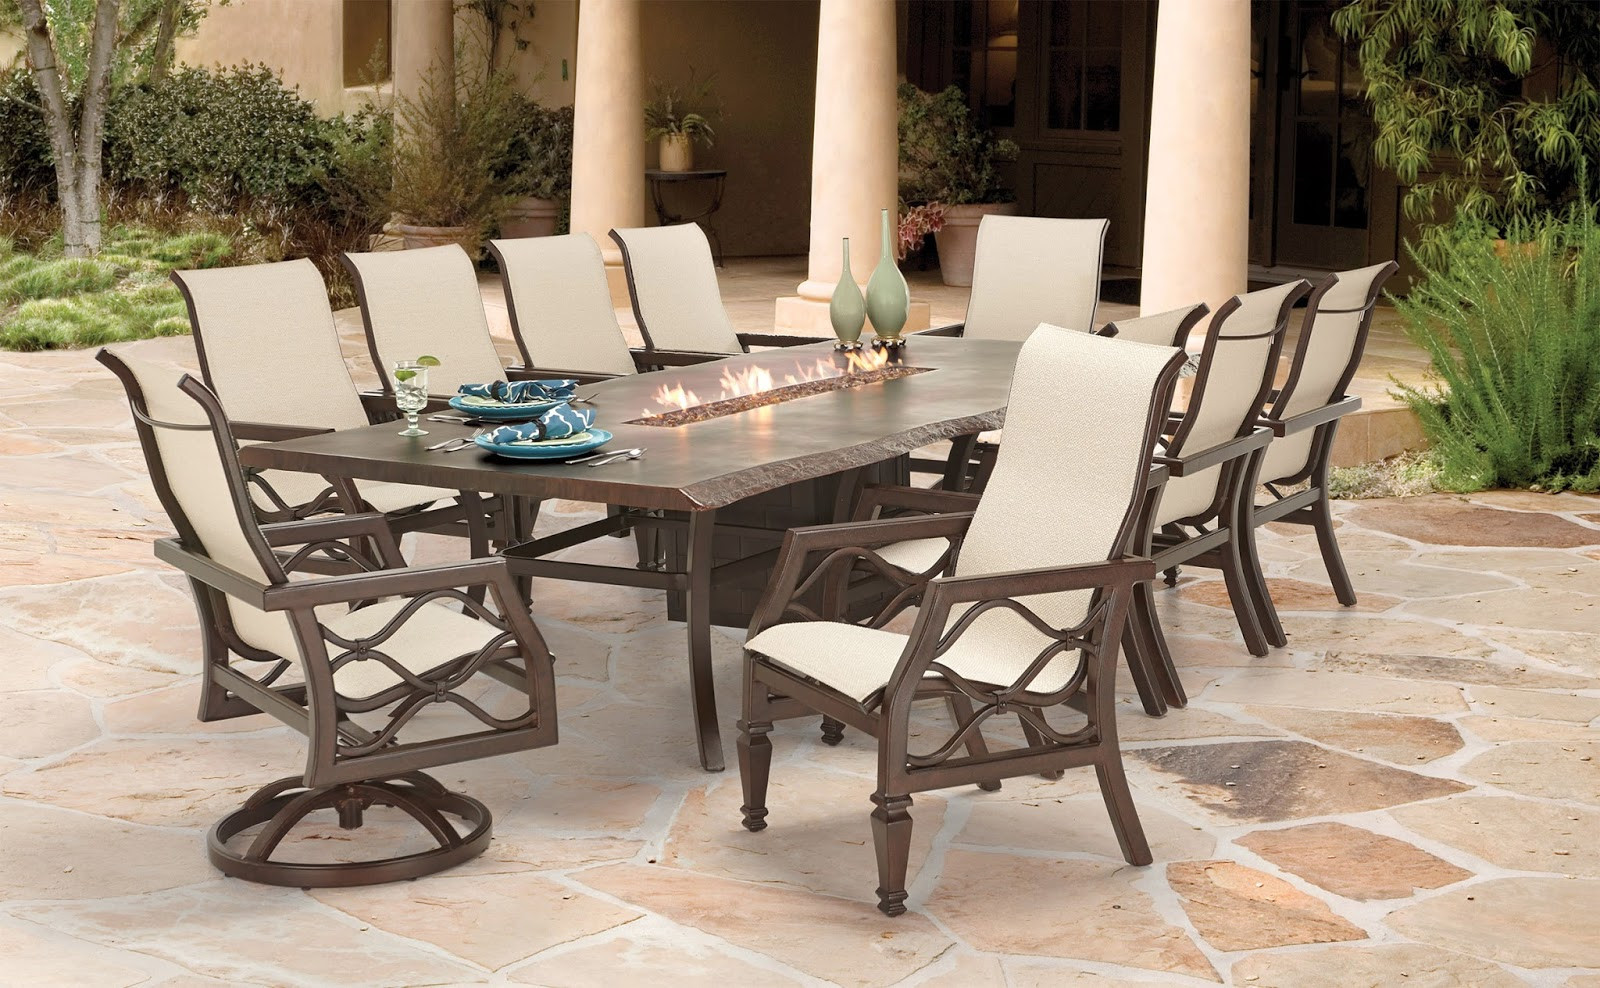 Best ideas about Fire Pit Dining Table . Save or Pin Pride Family Brands To Add Contemporary Style To New 2016 Now.